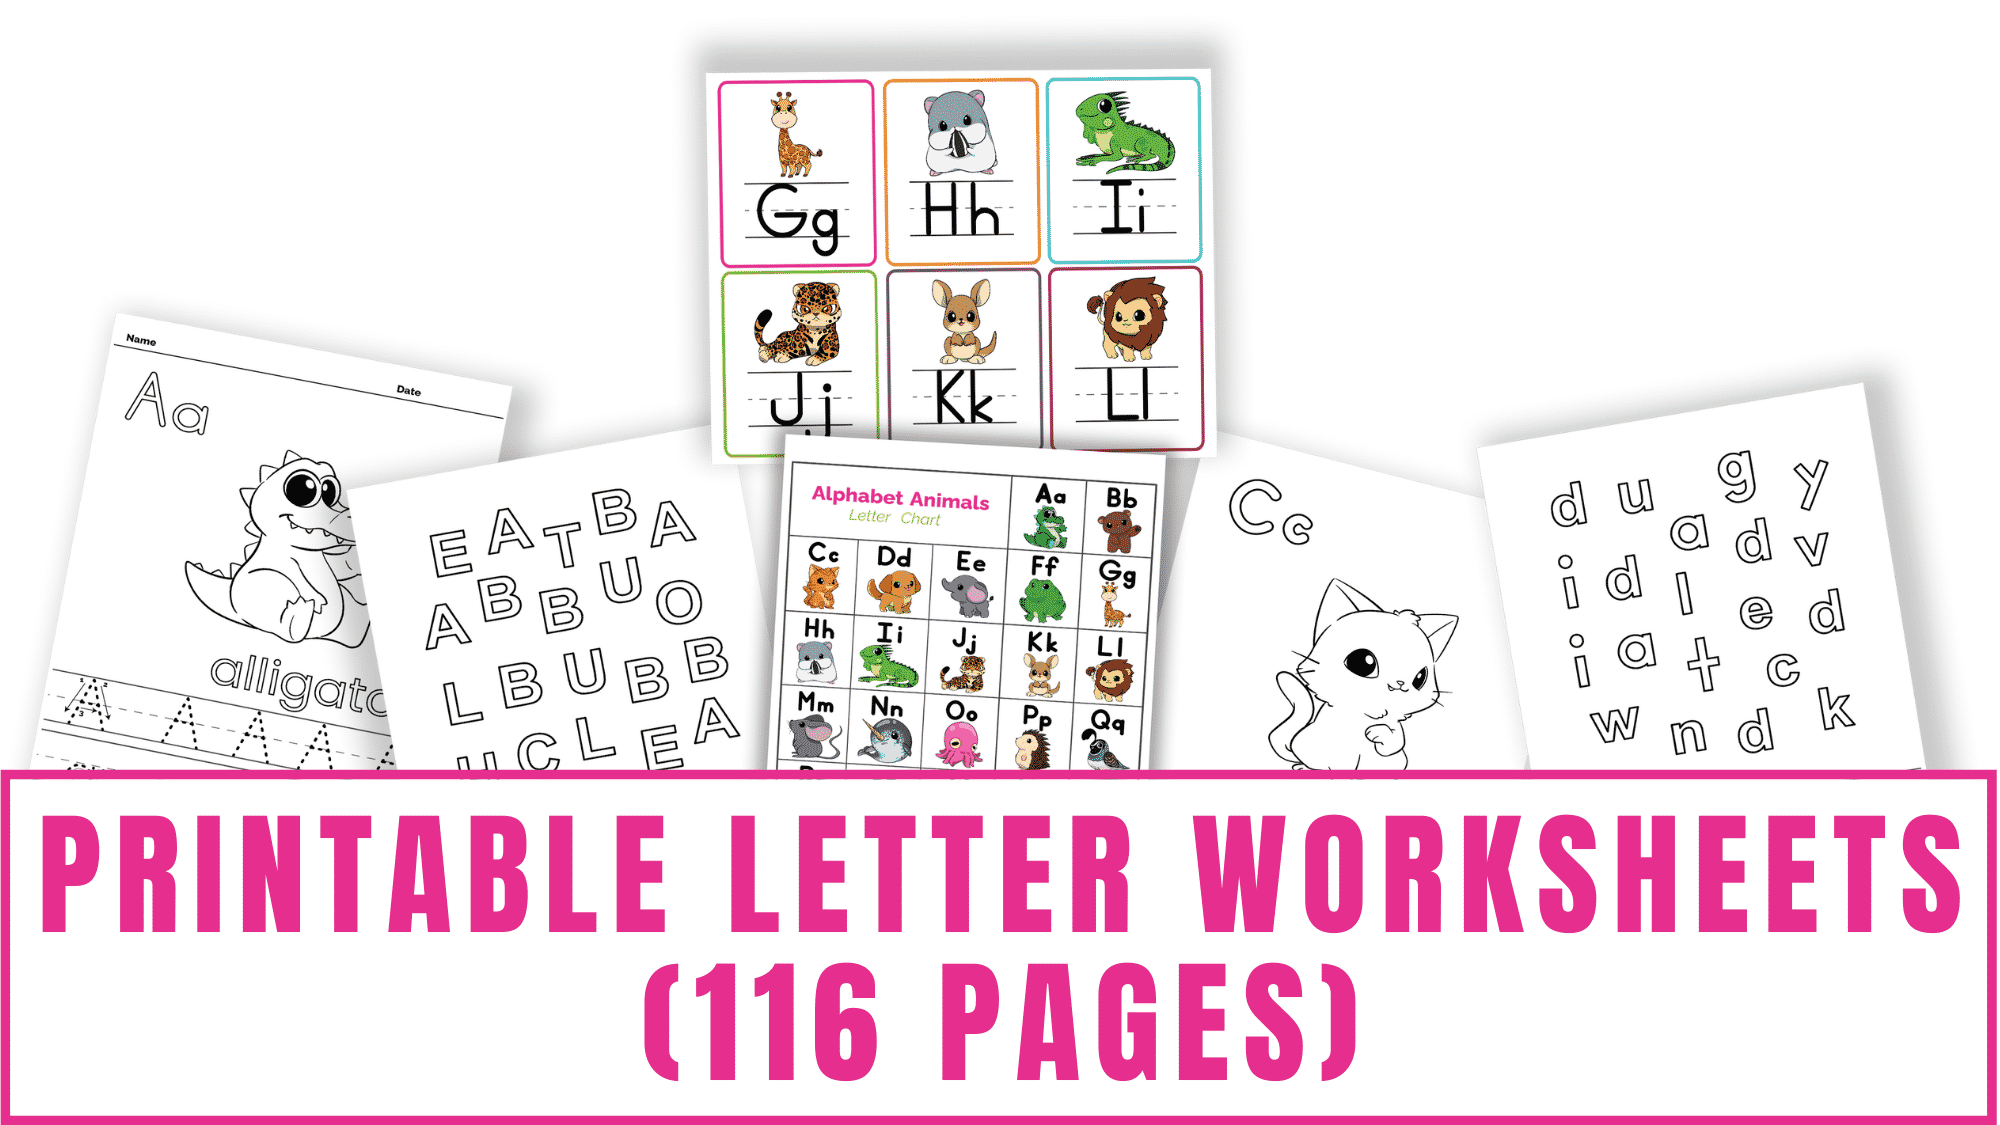 Looking for printable preschool letter worksheets to help your kid with letter recognition, letter reading, letter sounds, letter writing, and more? These printable letter sheets will teach them all of these topics.